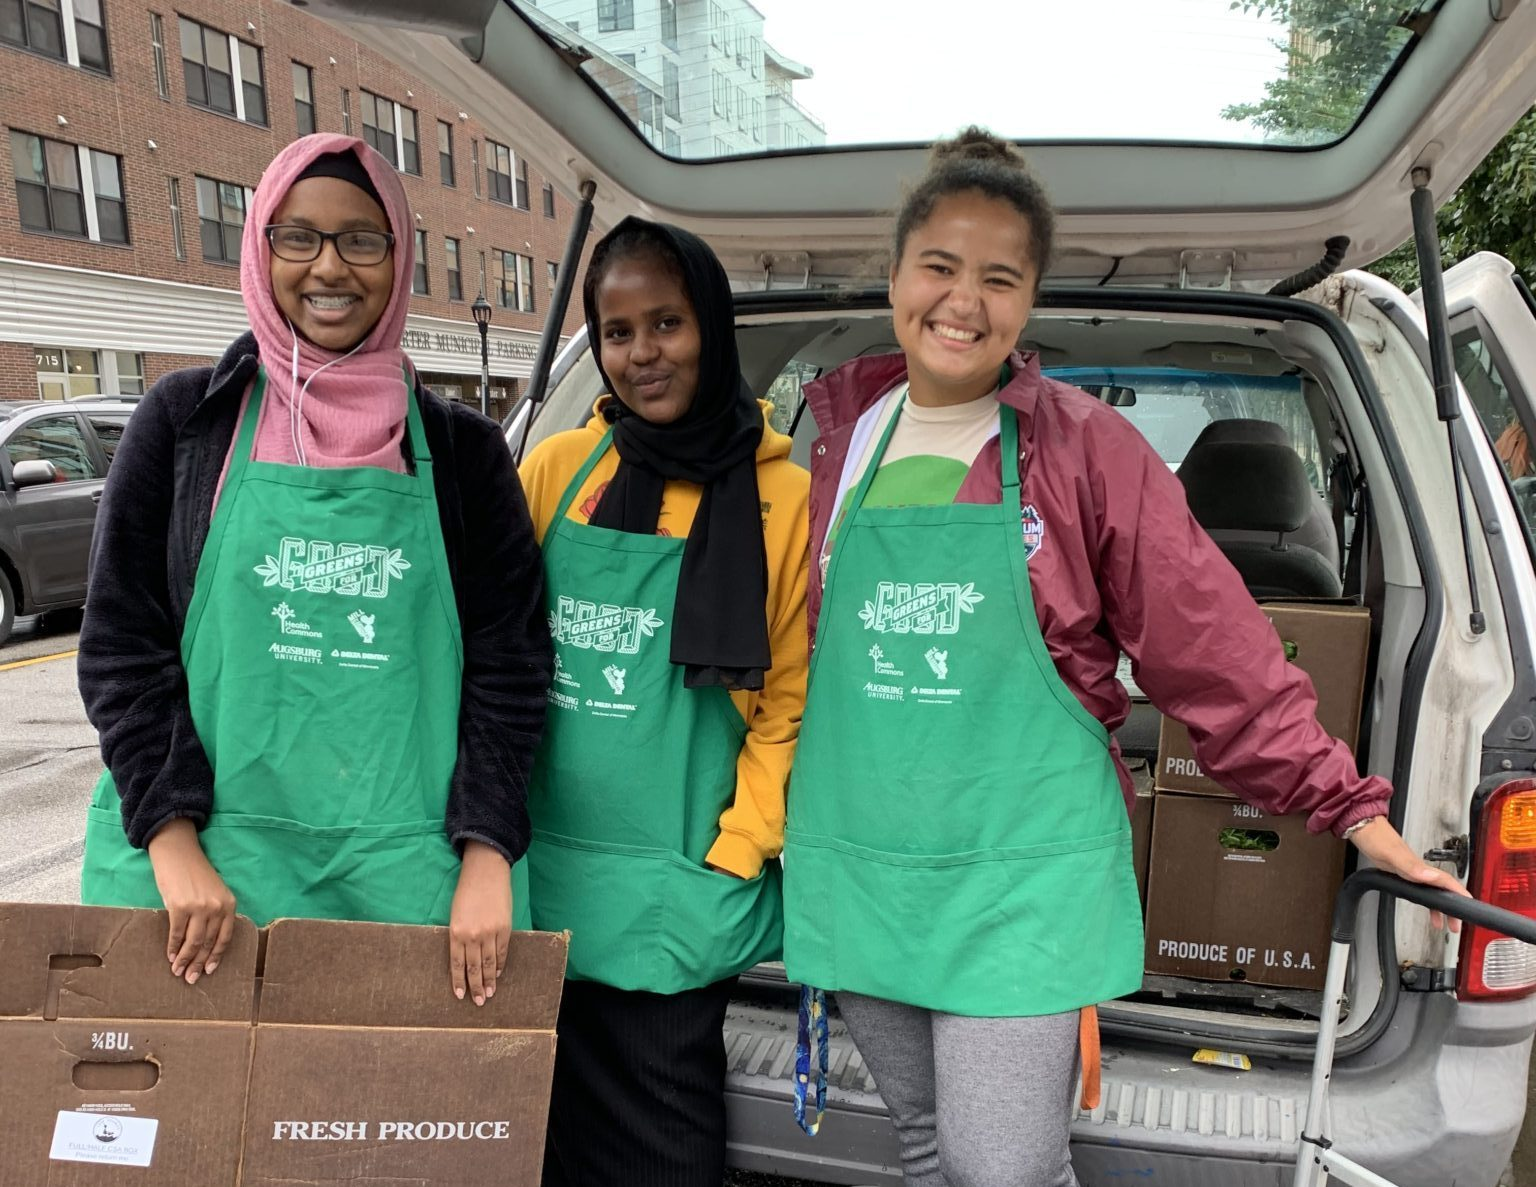 Greens for Good volunteers July 2019